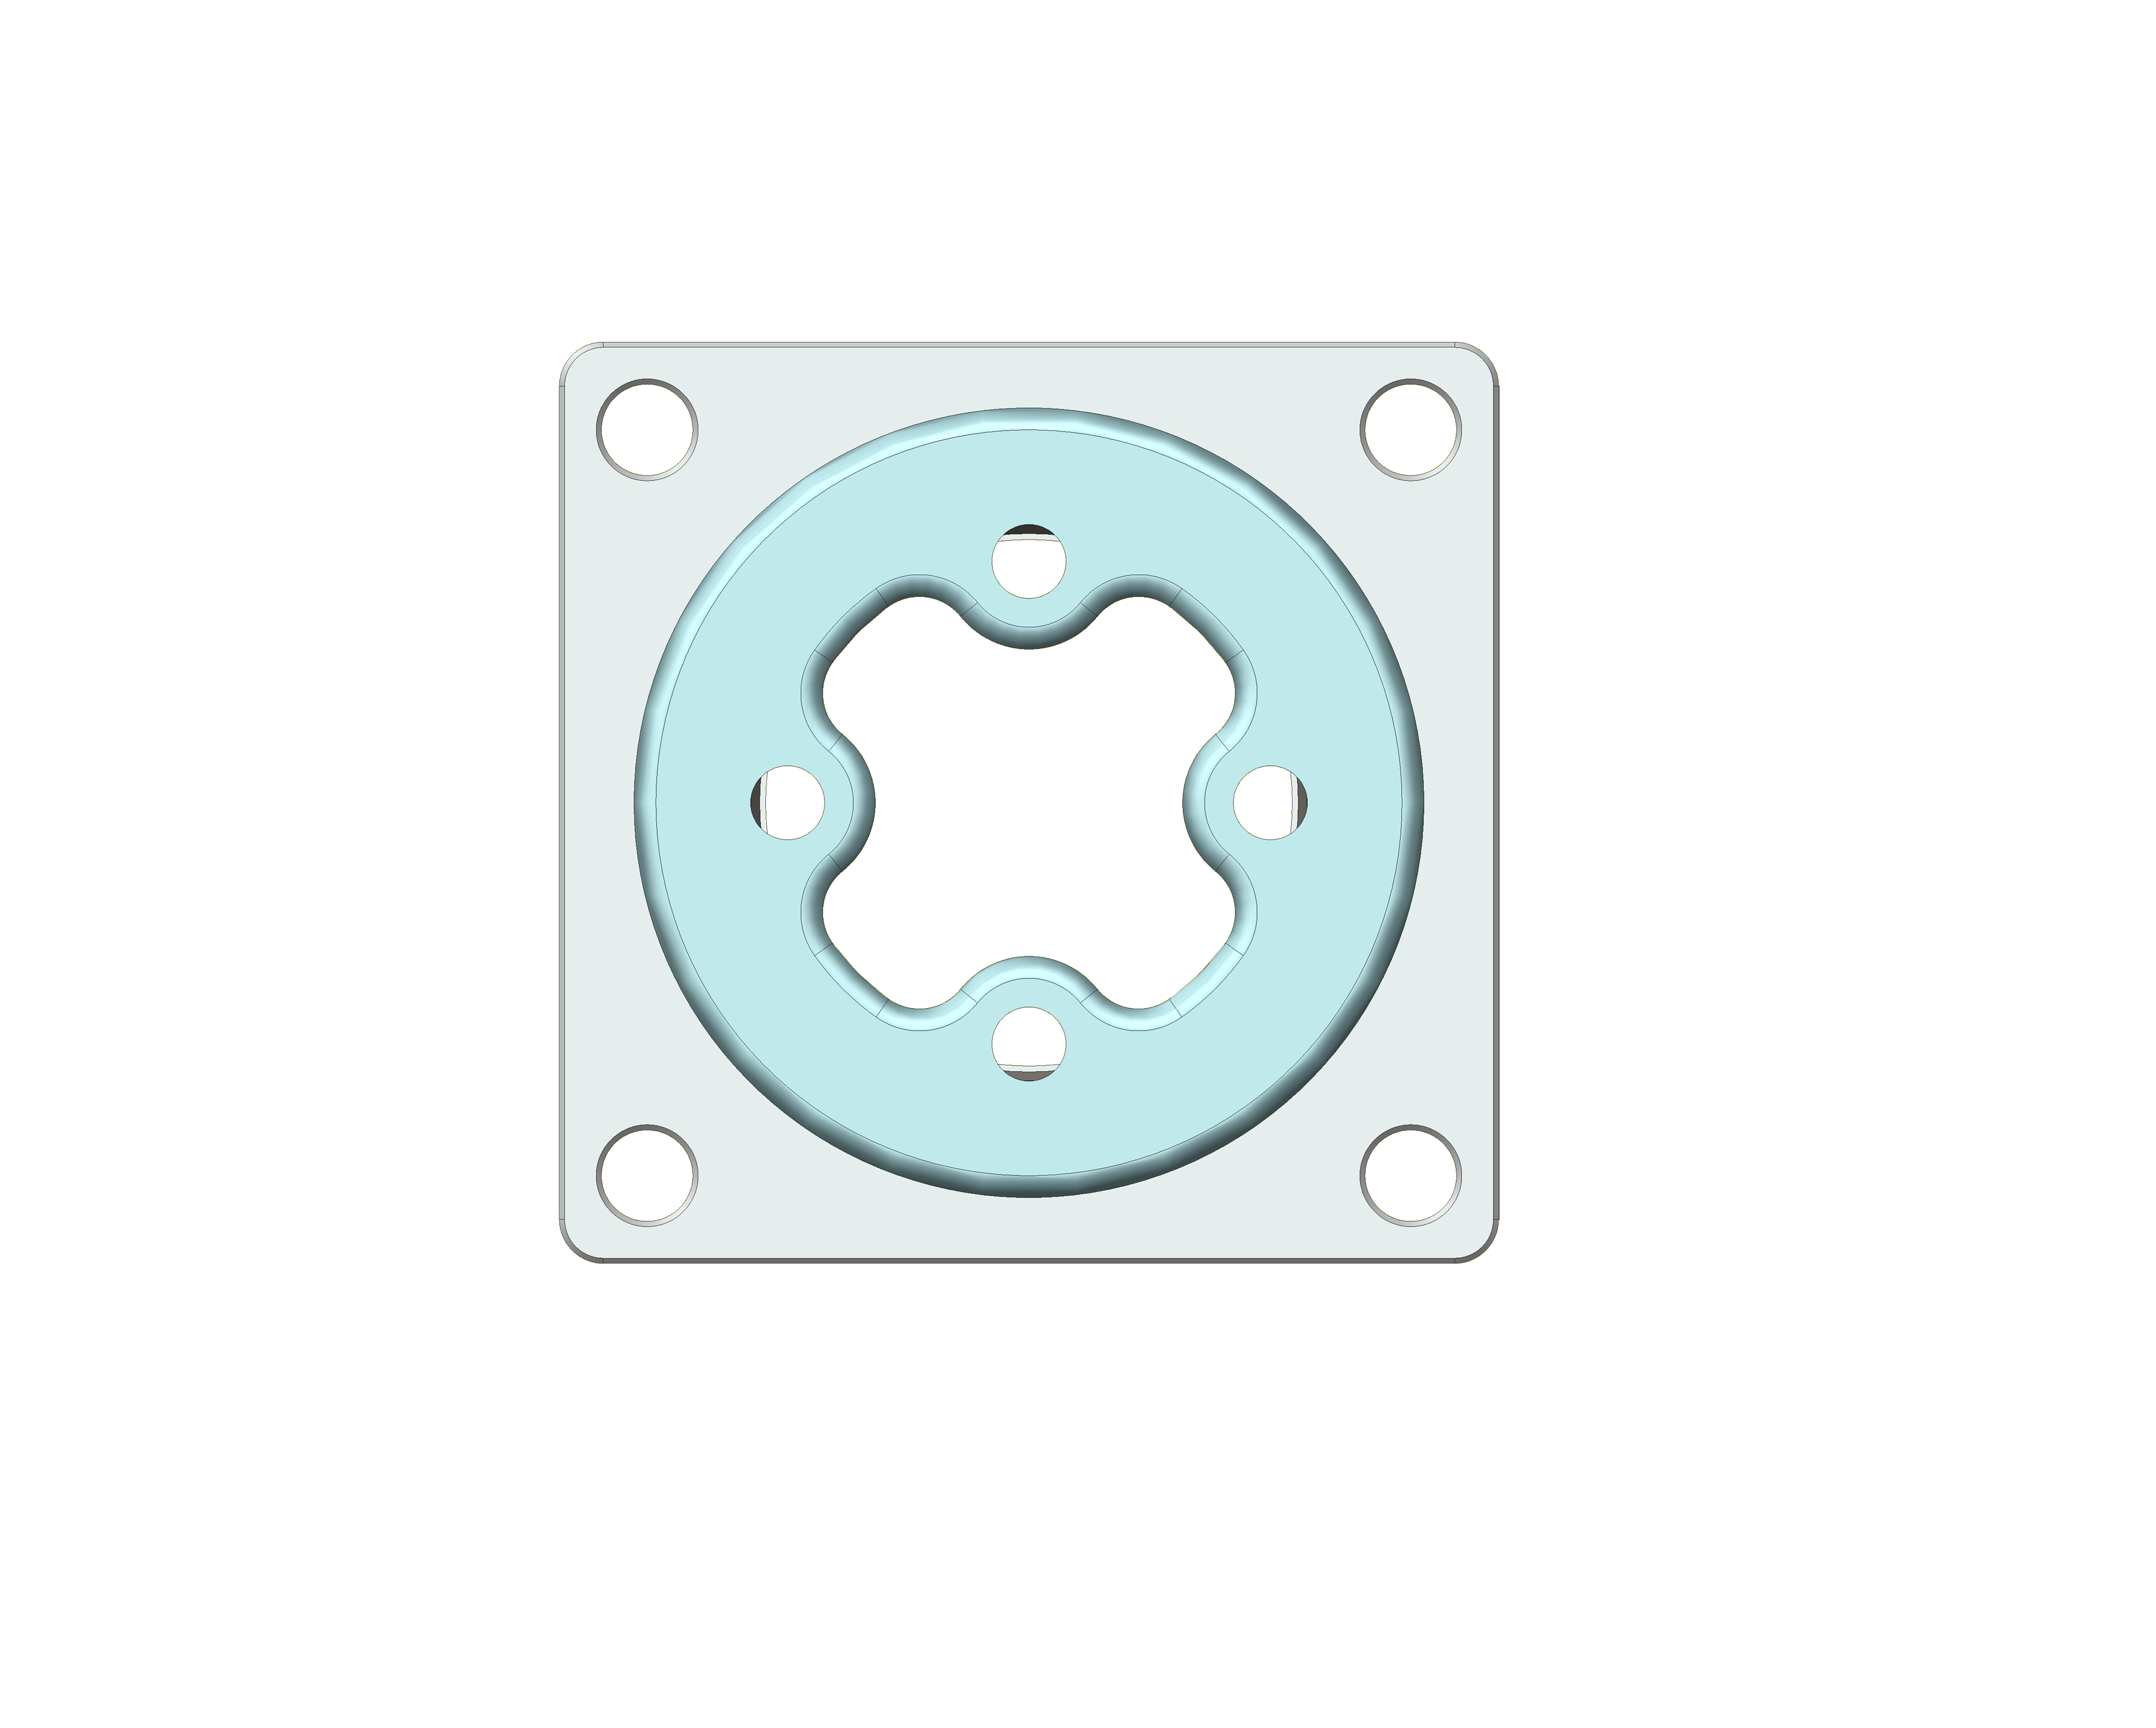 Top View showing universal adapter